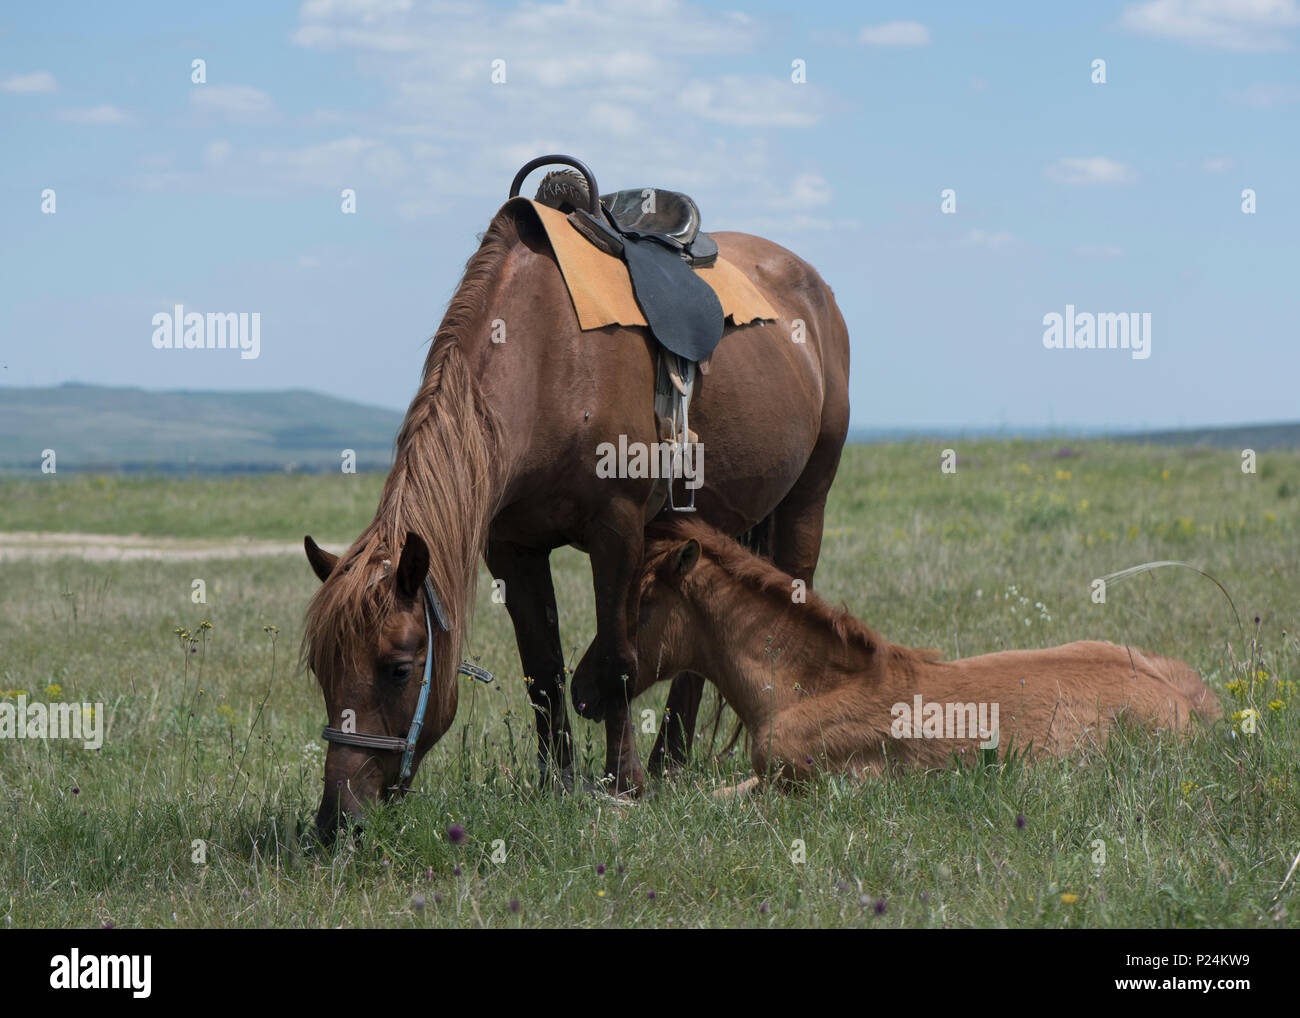 the bay horse with a foal who is grazed on a meadow - Stock Image